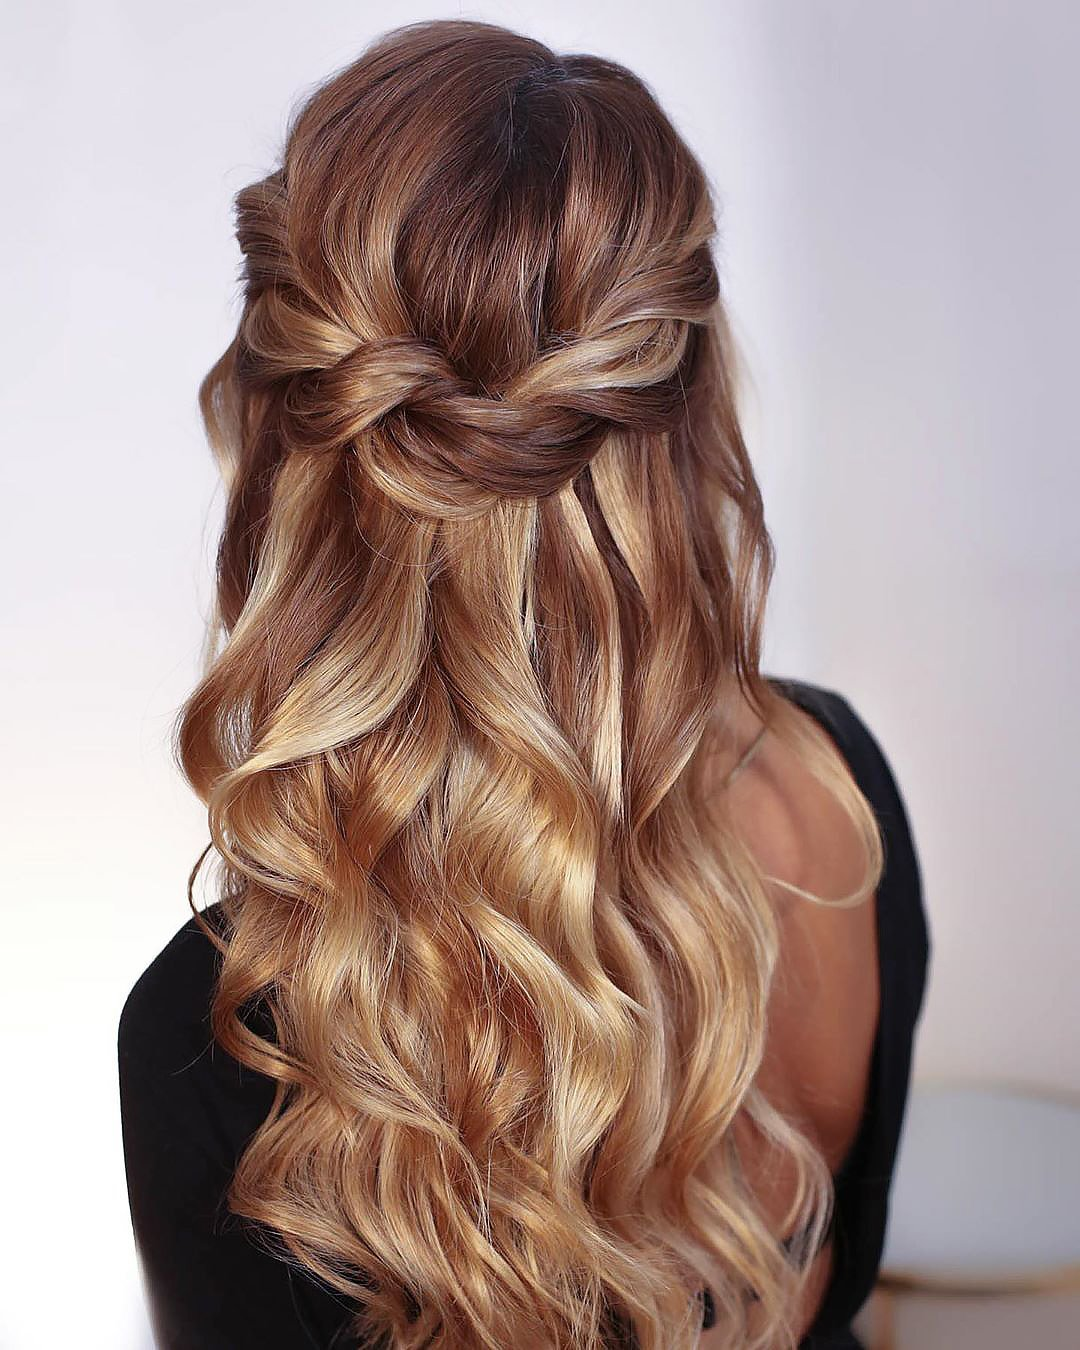 half up half down wedding hairstyles curly swept blonde hair kristinagasperasacademy